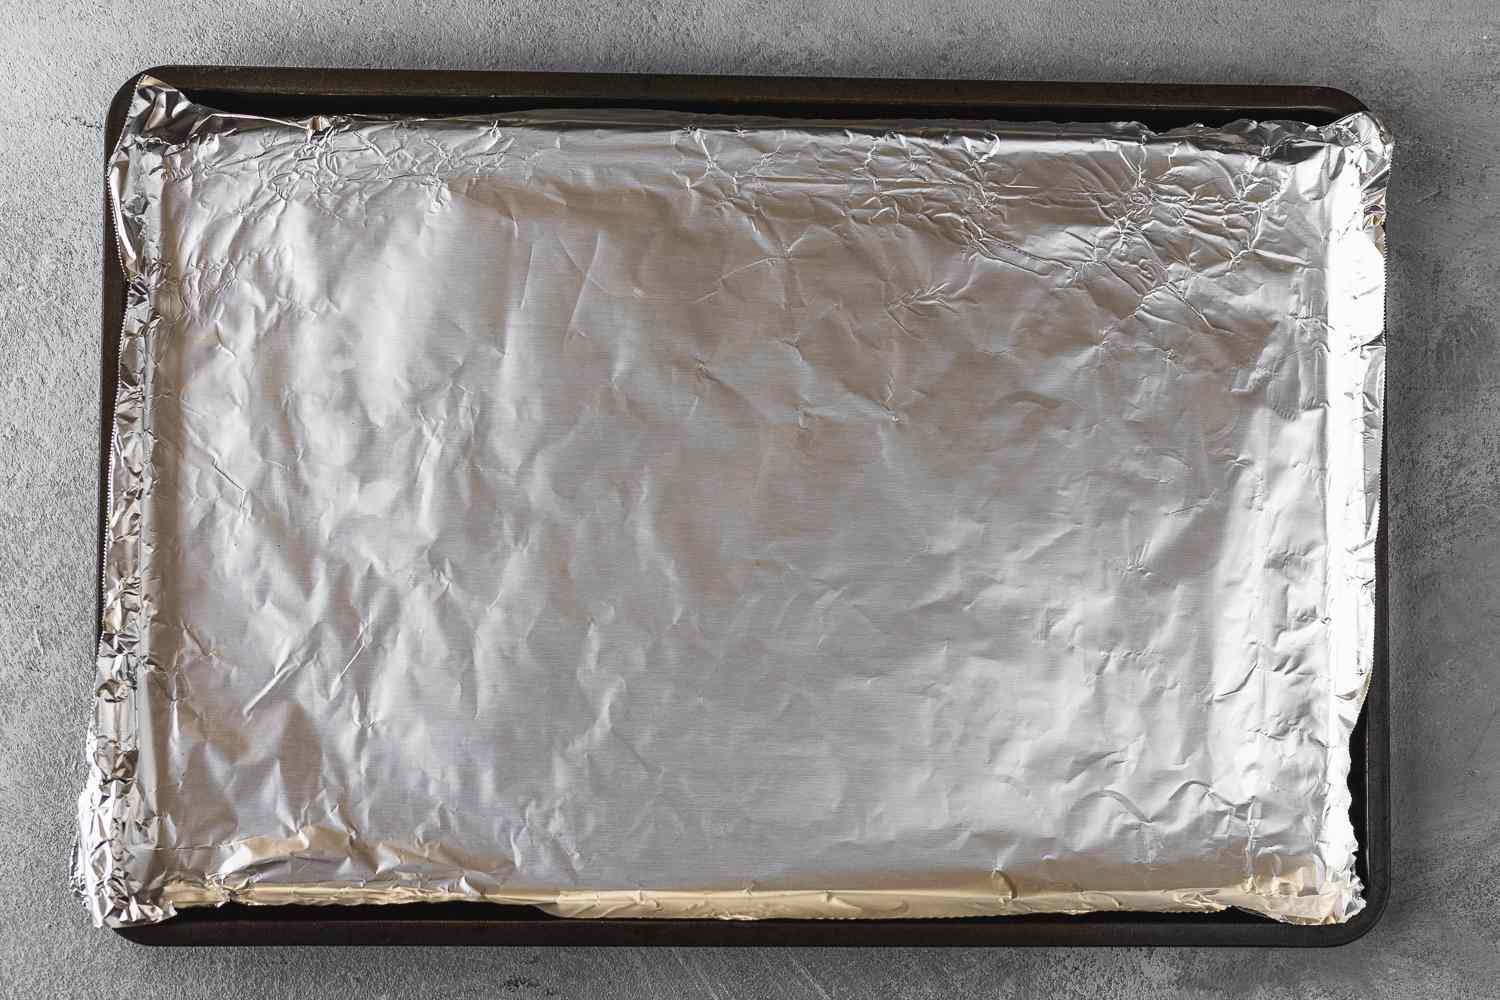 baking pan lined with aluminum foil